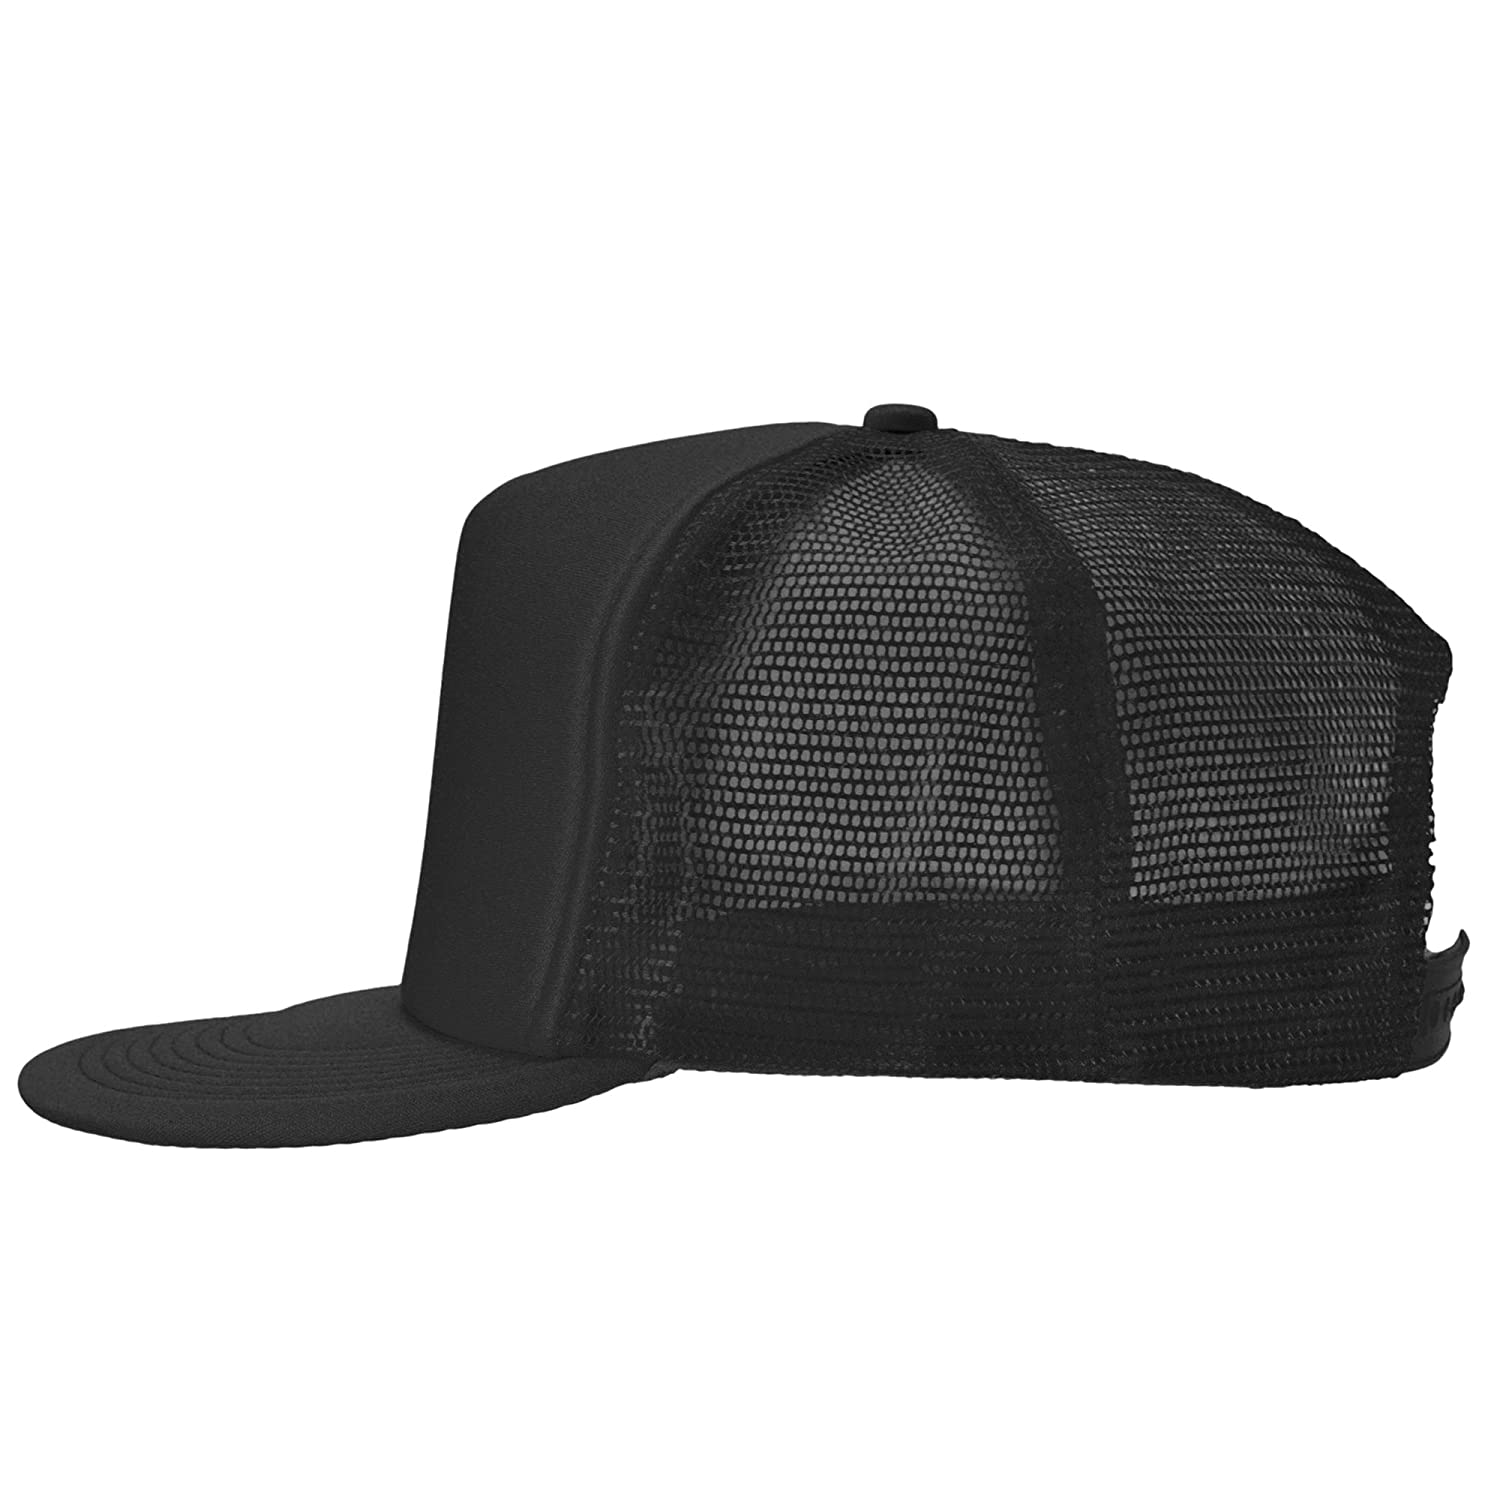 d5226dd36db DALIX Flat Billed Trucker Cap With Mesh Back in Black at Amazon Men s  Clothing store